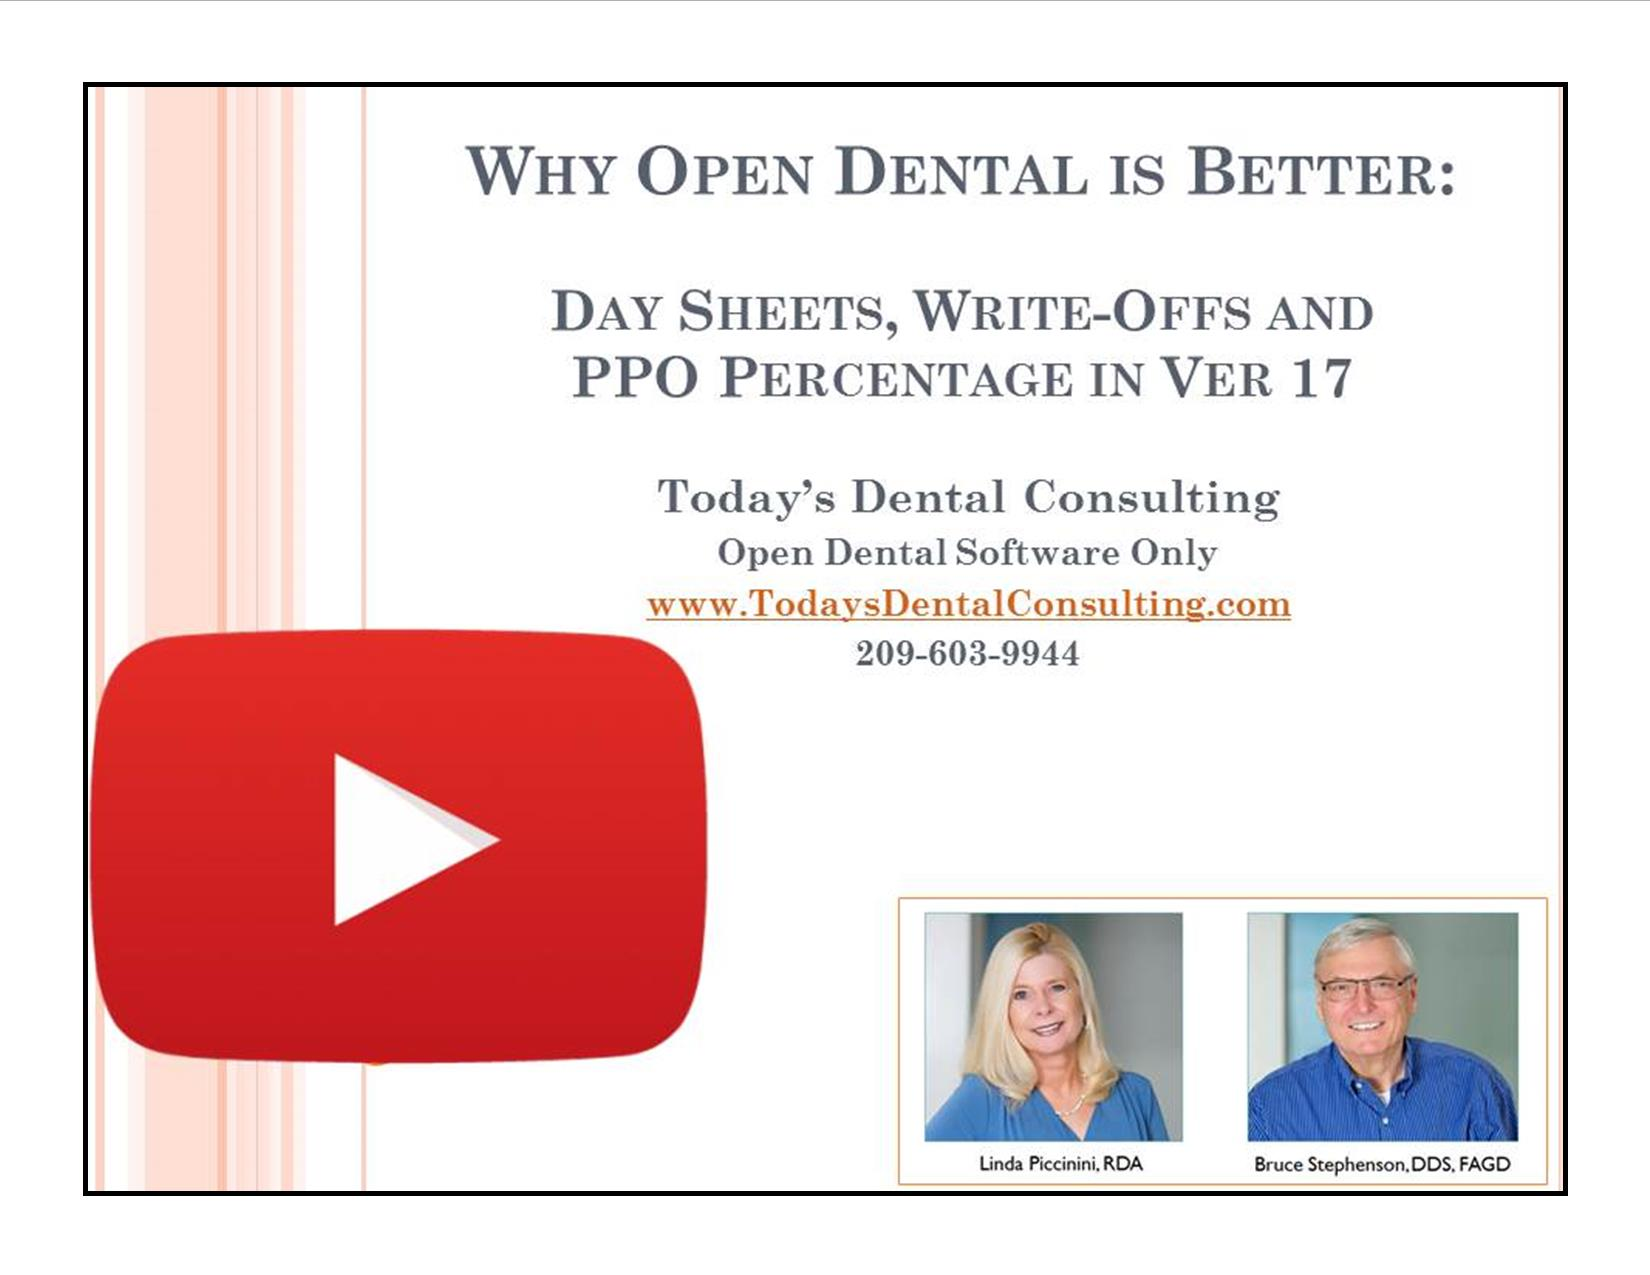 Why Open Dental is Better